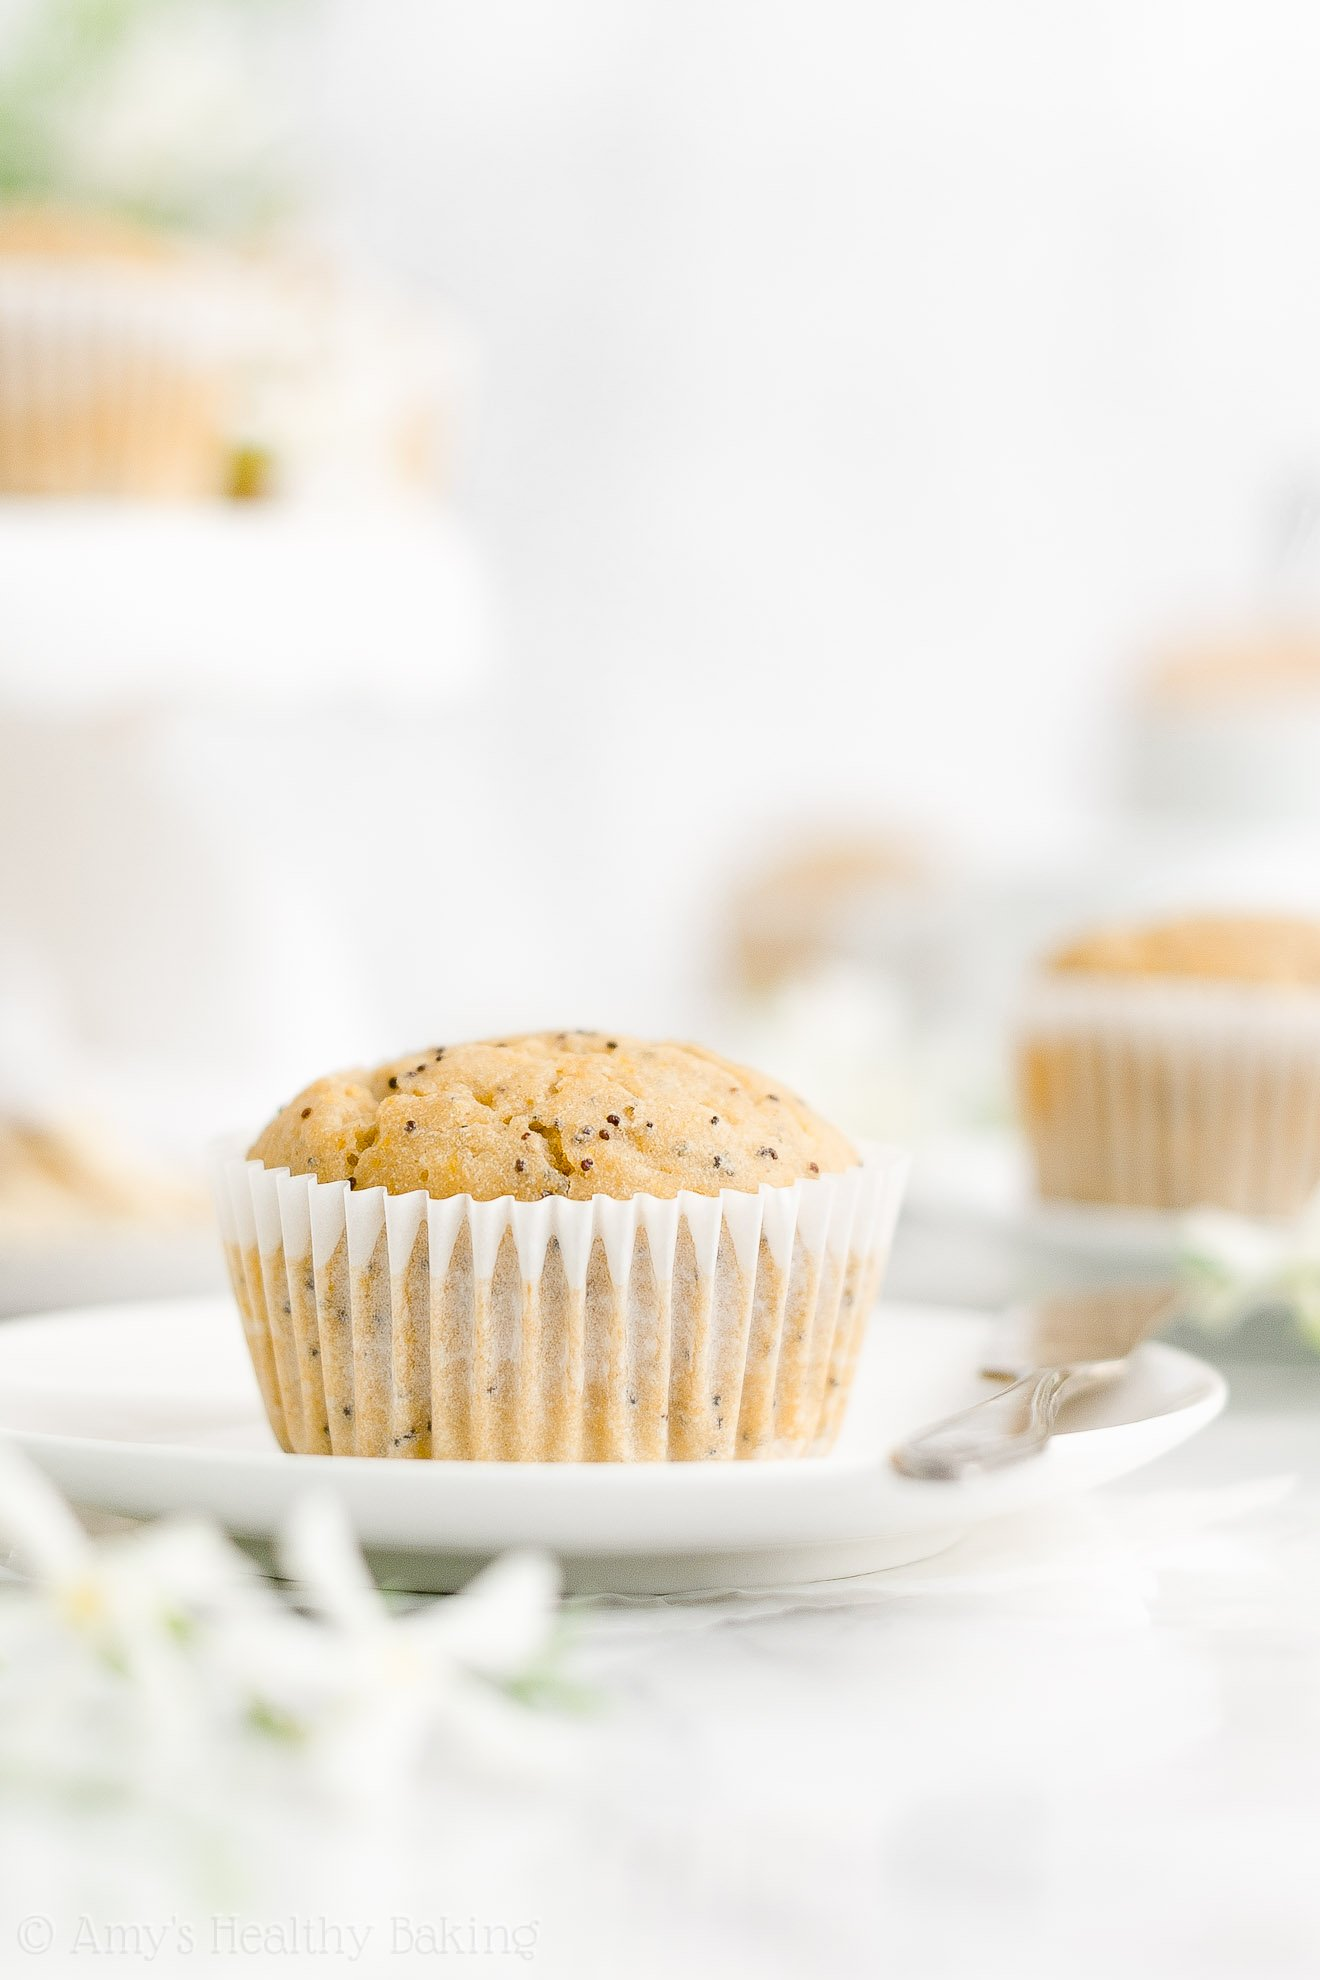 Best Ever Easy Healthy Gluten Free Sugar Free Moist Lemon Poppy Seed Muffins